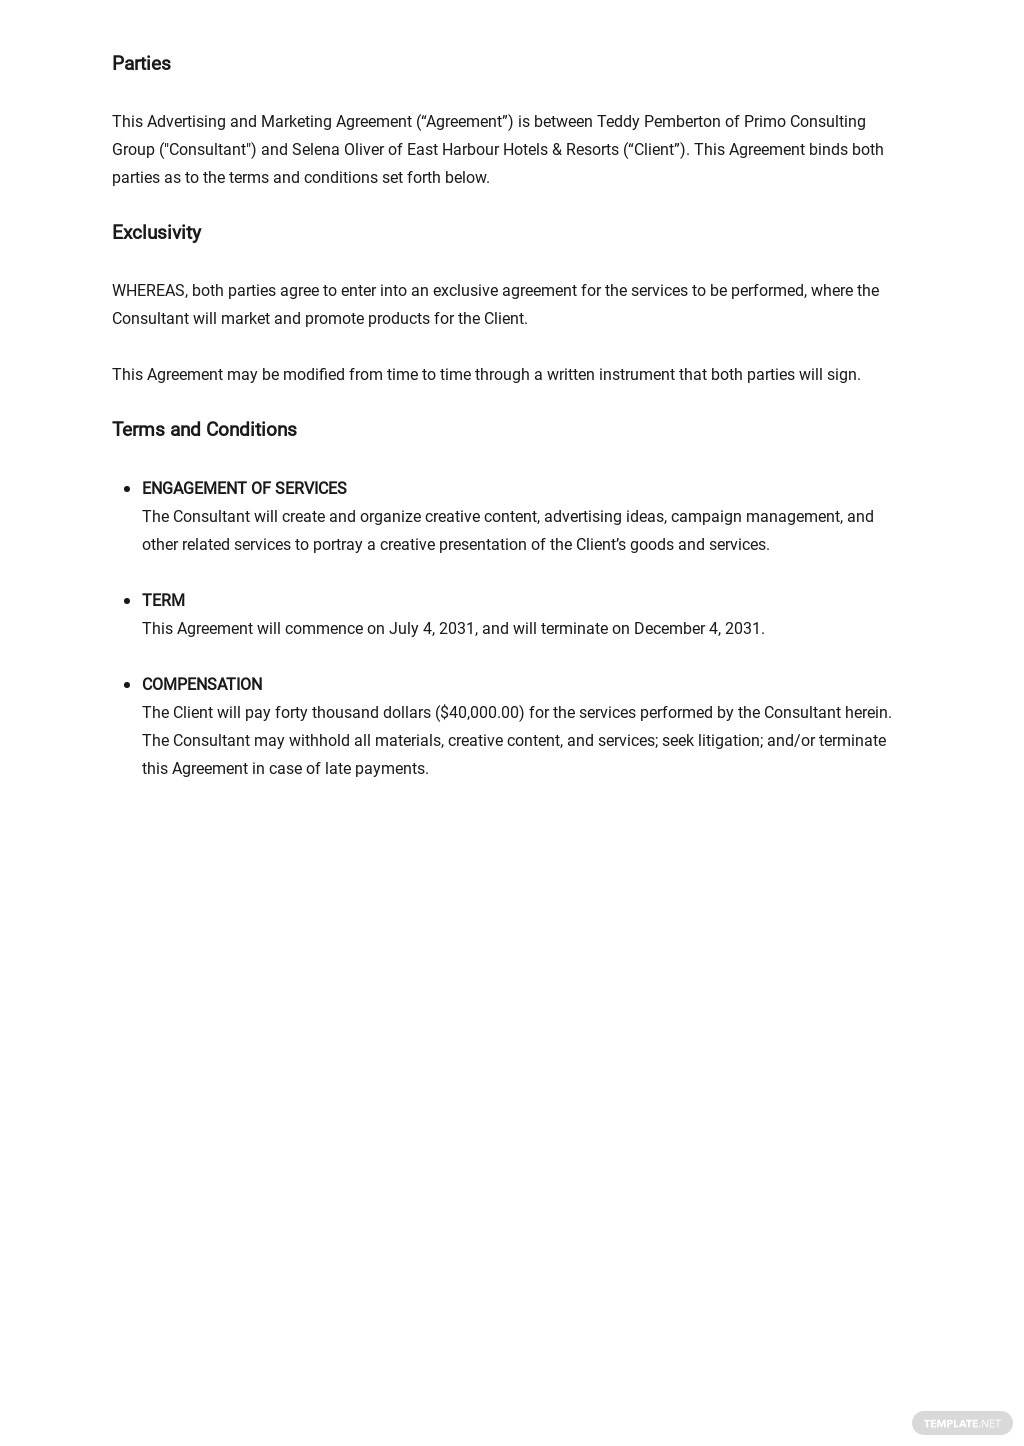 Advertising and Marketing Agreement Template 1.jpe